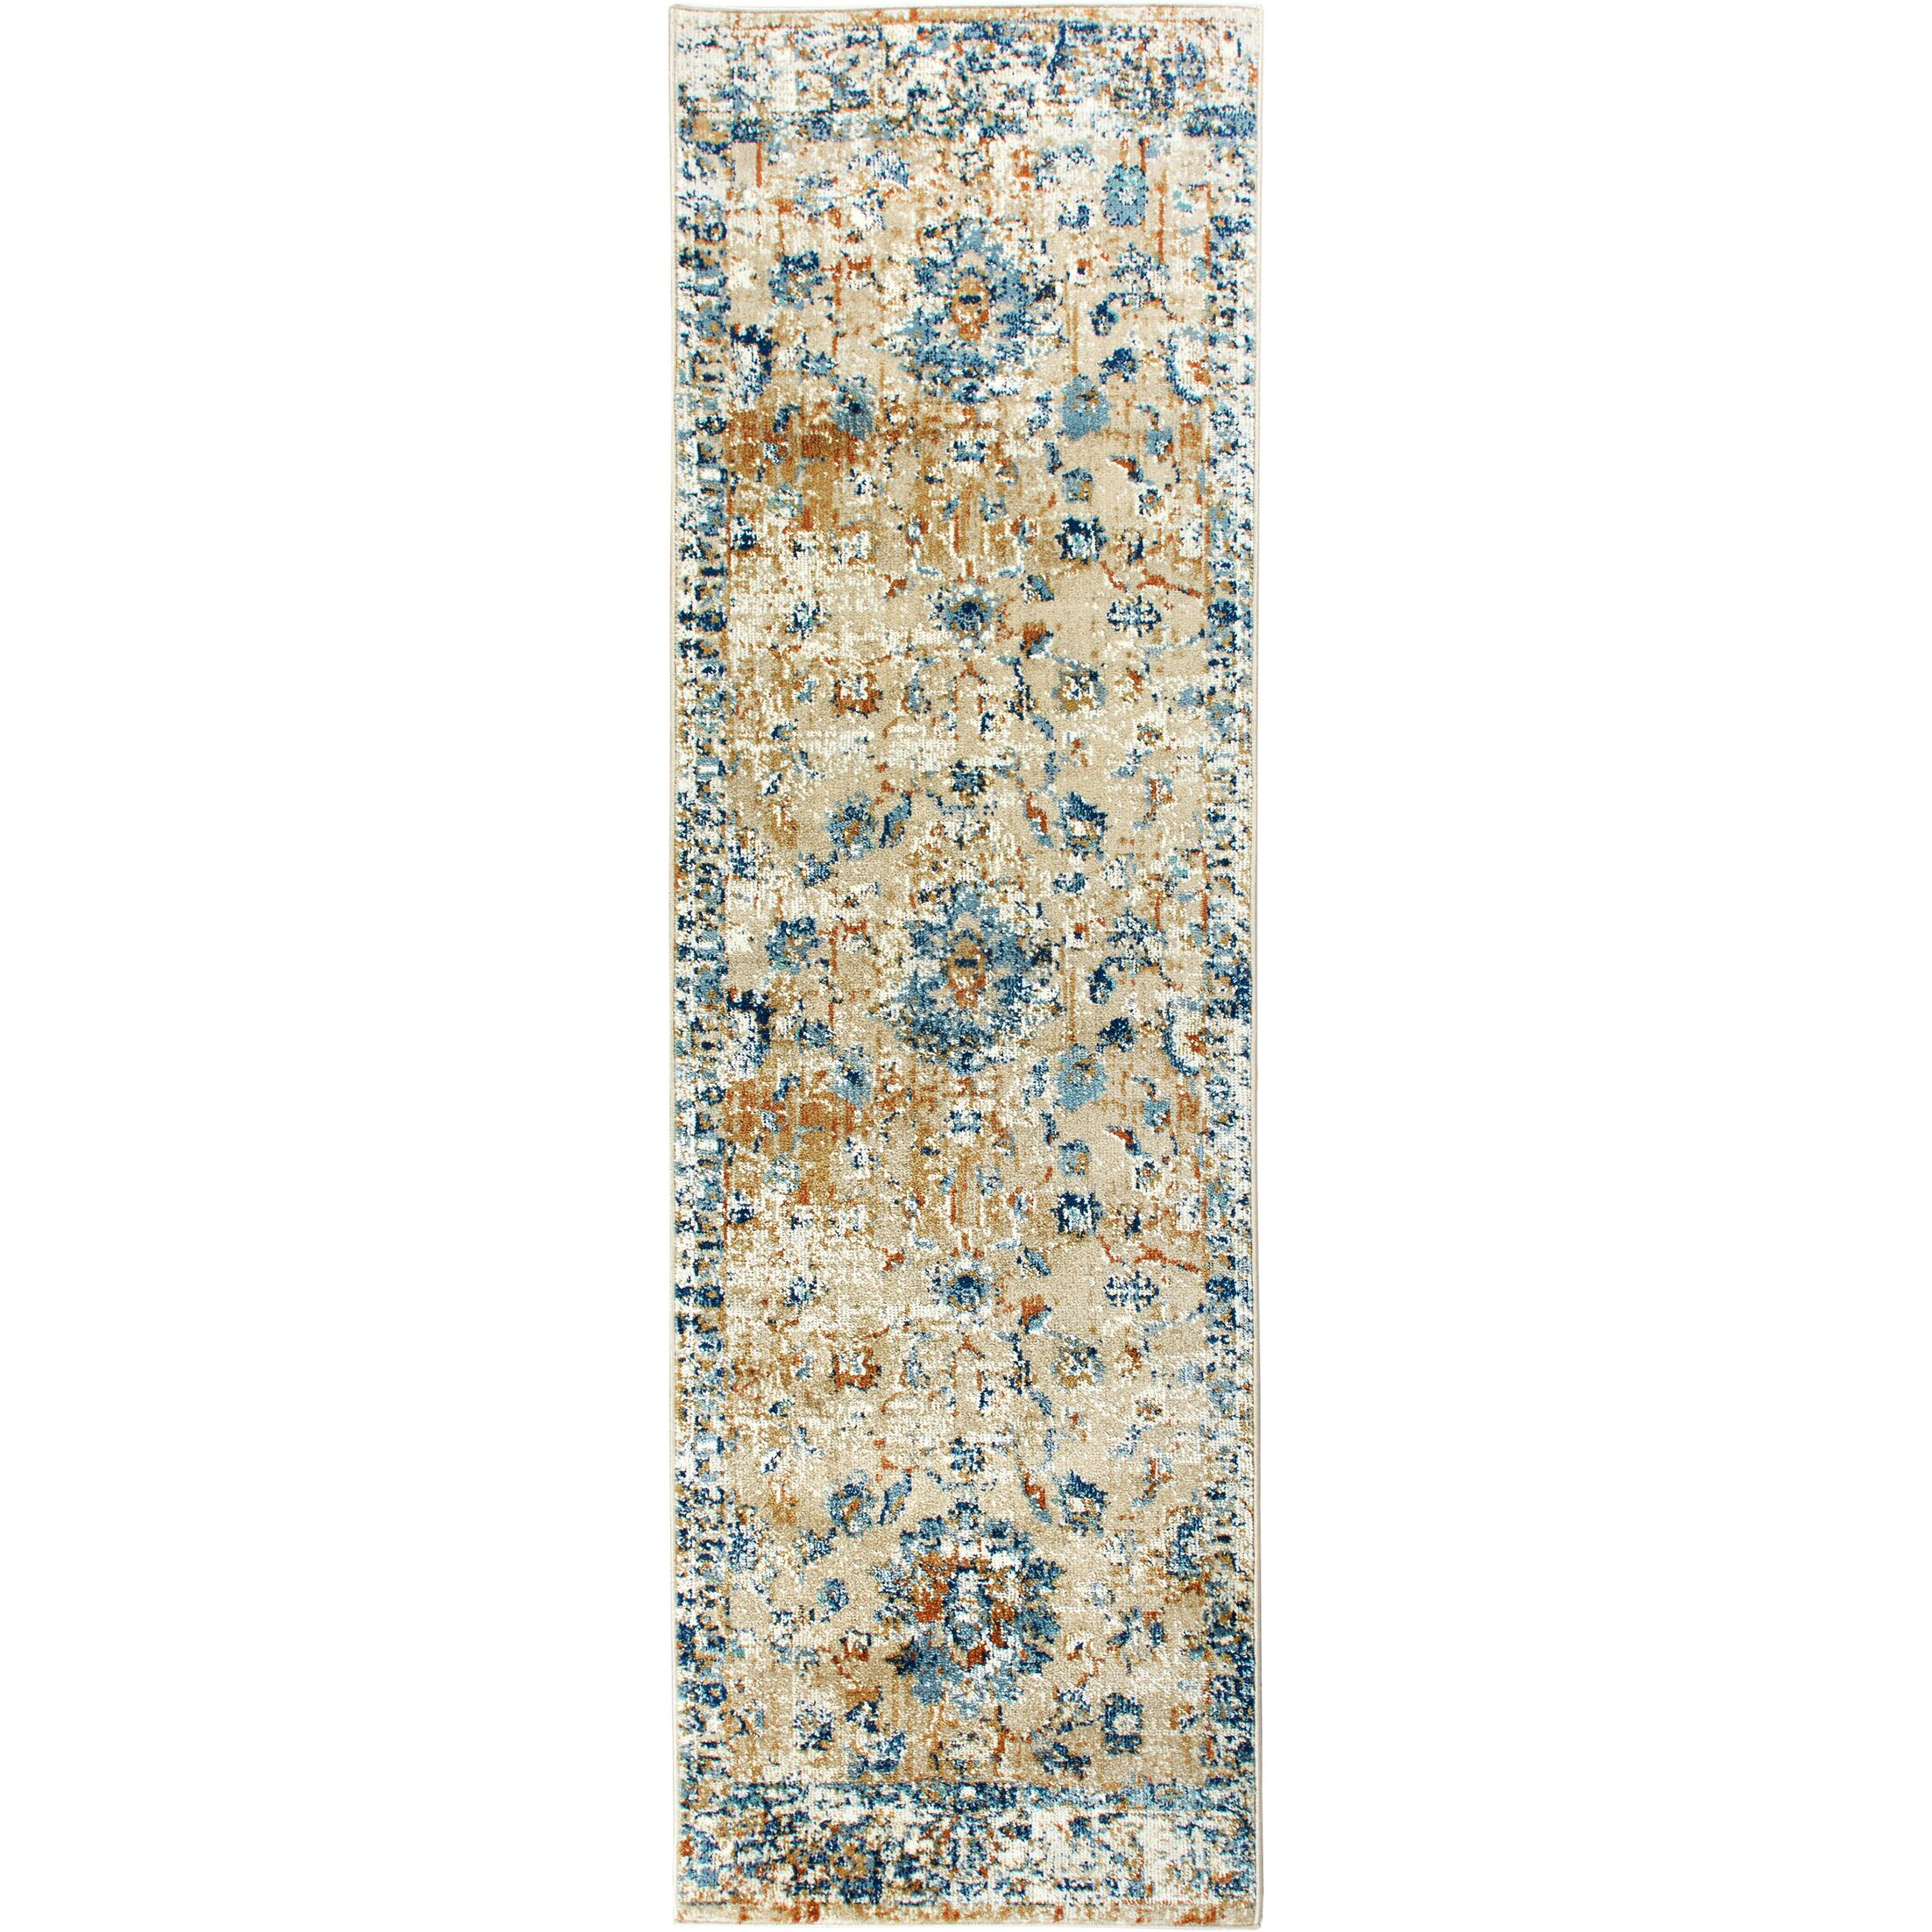 Heritage Cotton Gray/Blue Area Rug Rug Size: Runner 2'2